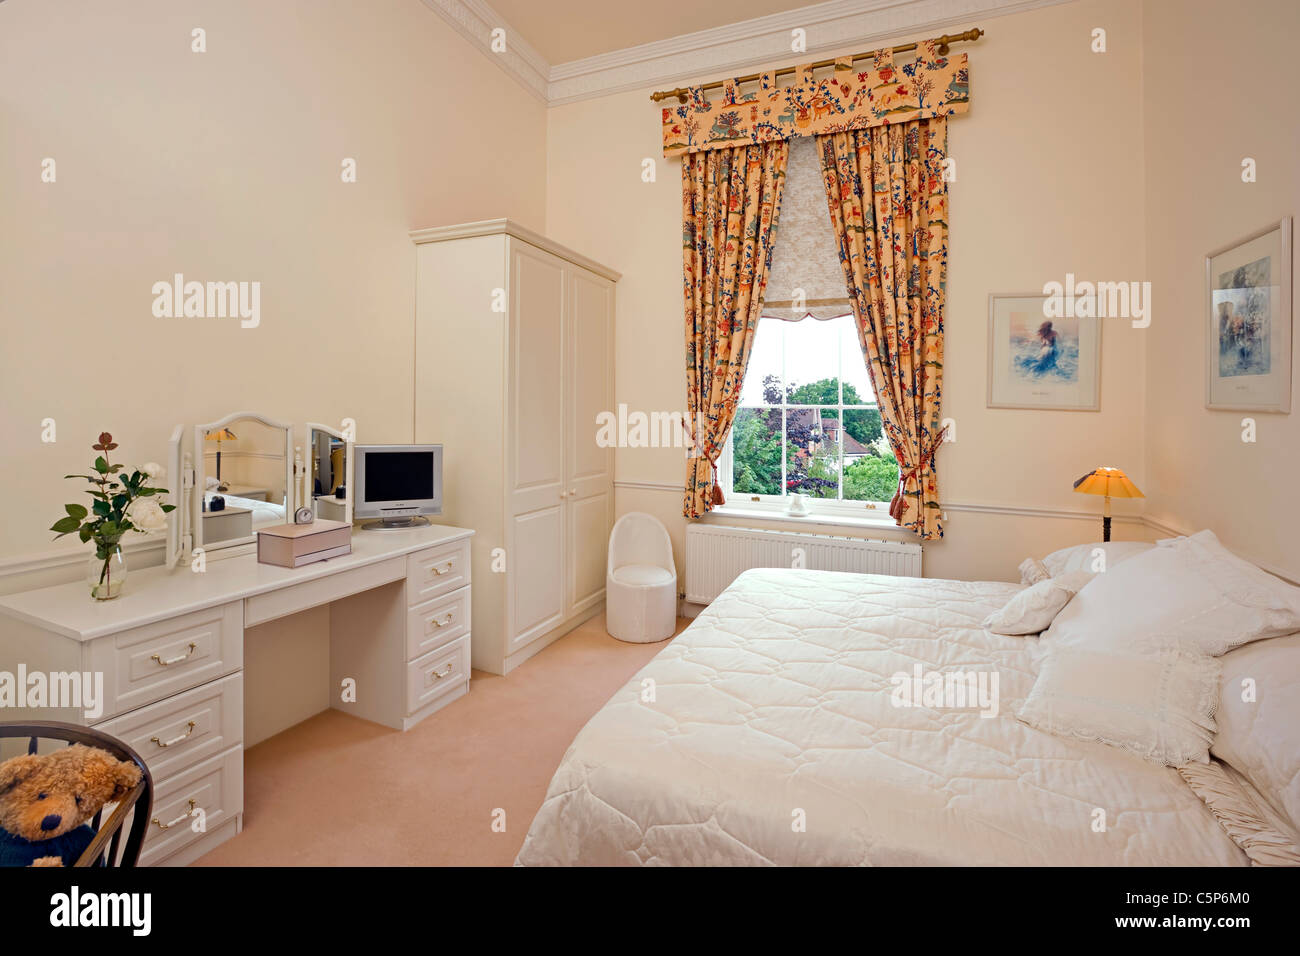 Interior of a traditional english bedroom - Stock Image